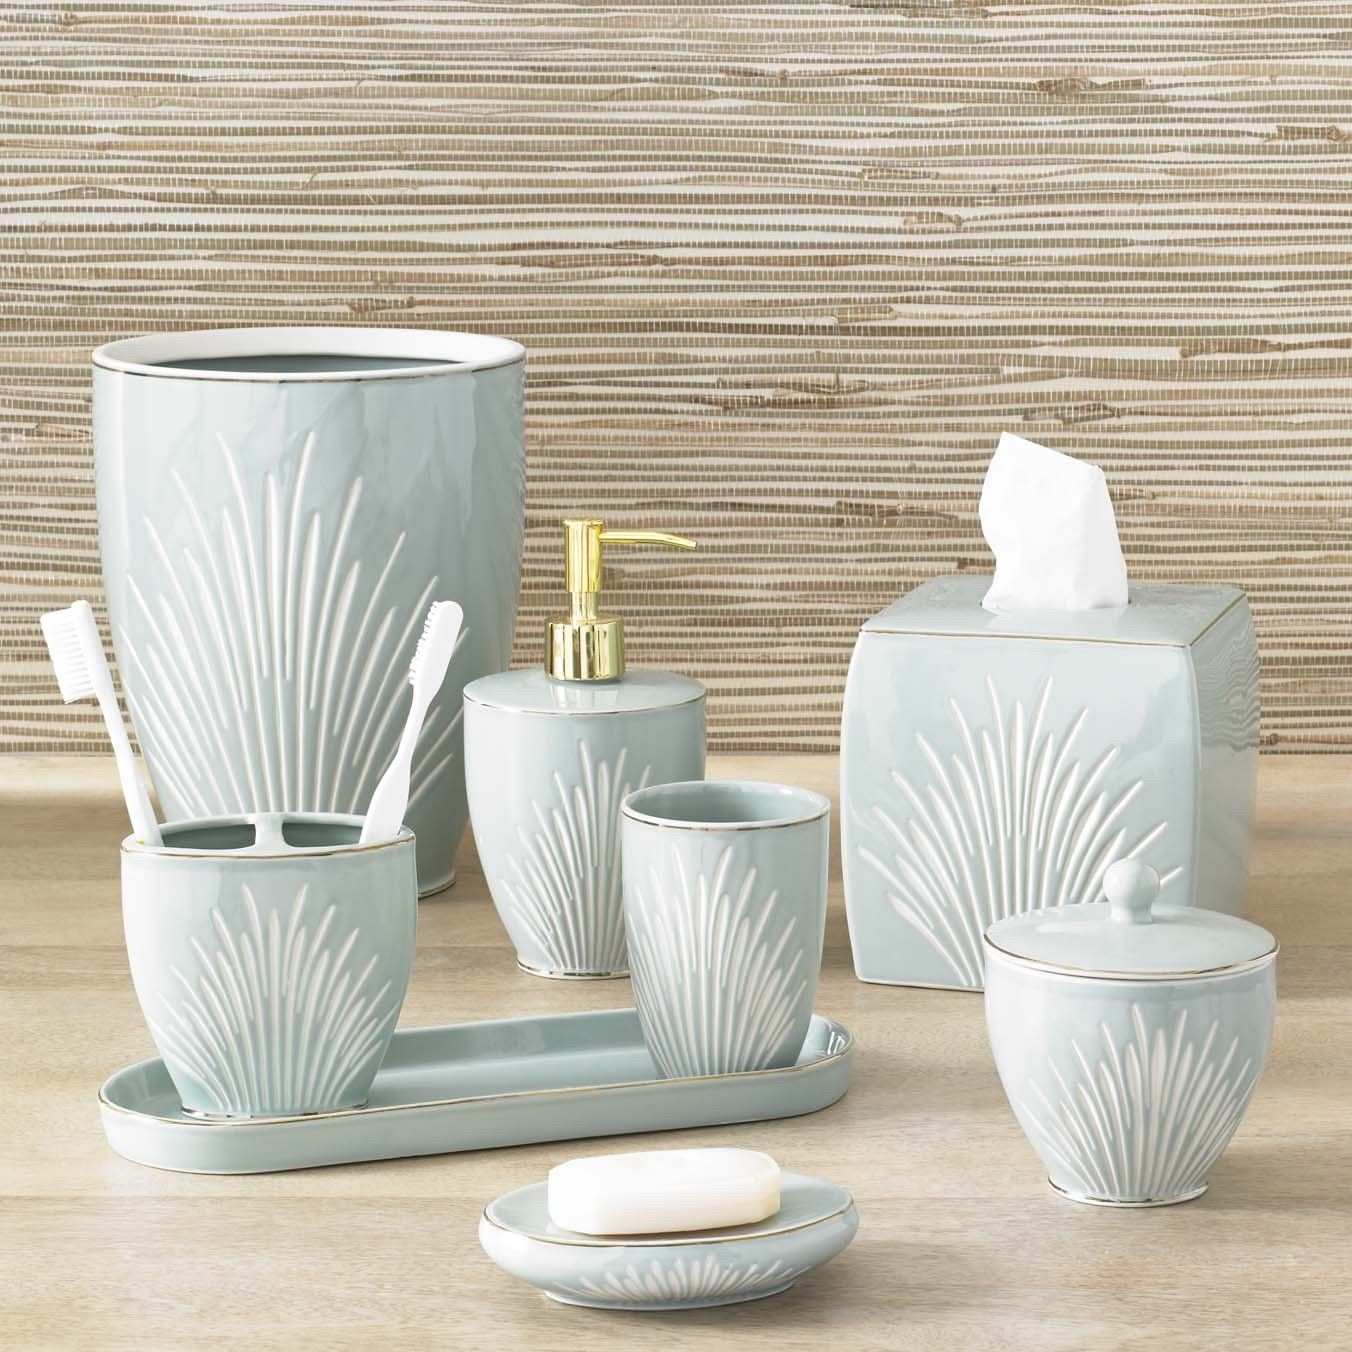 Our Coastal Porcelain Bath Accessory Set Will Transform Your Bath With Its  Tranquil Blue Color And